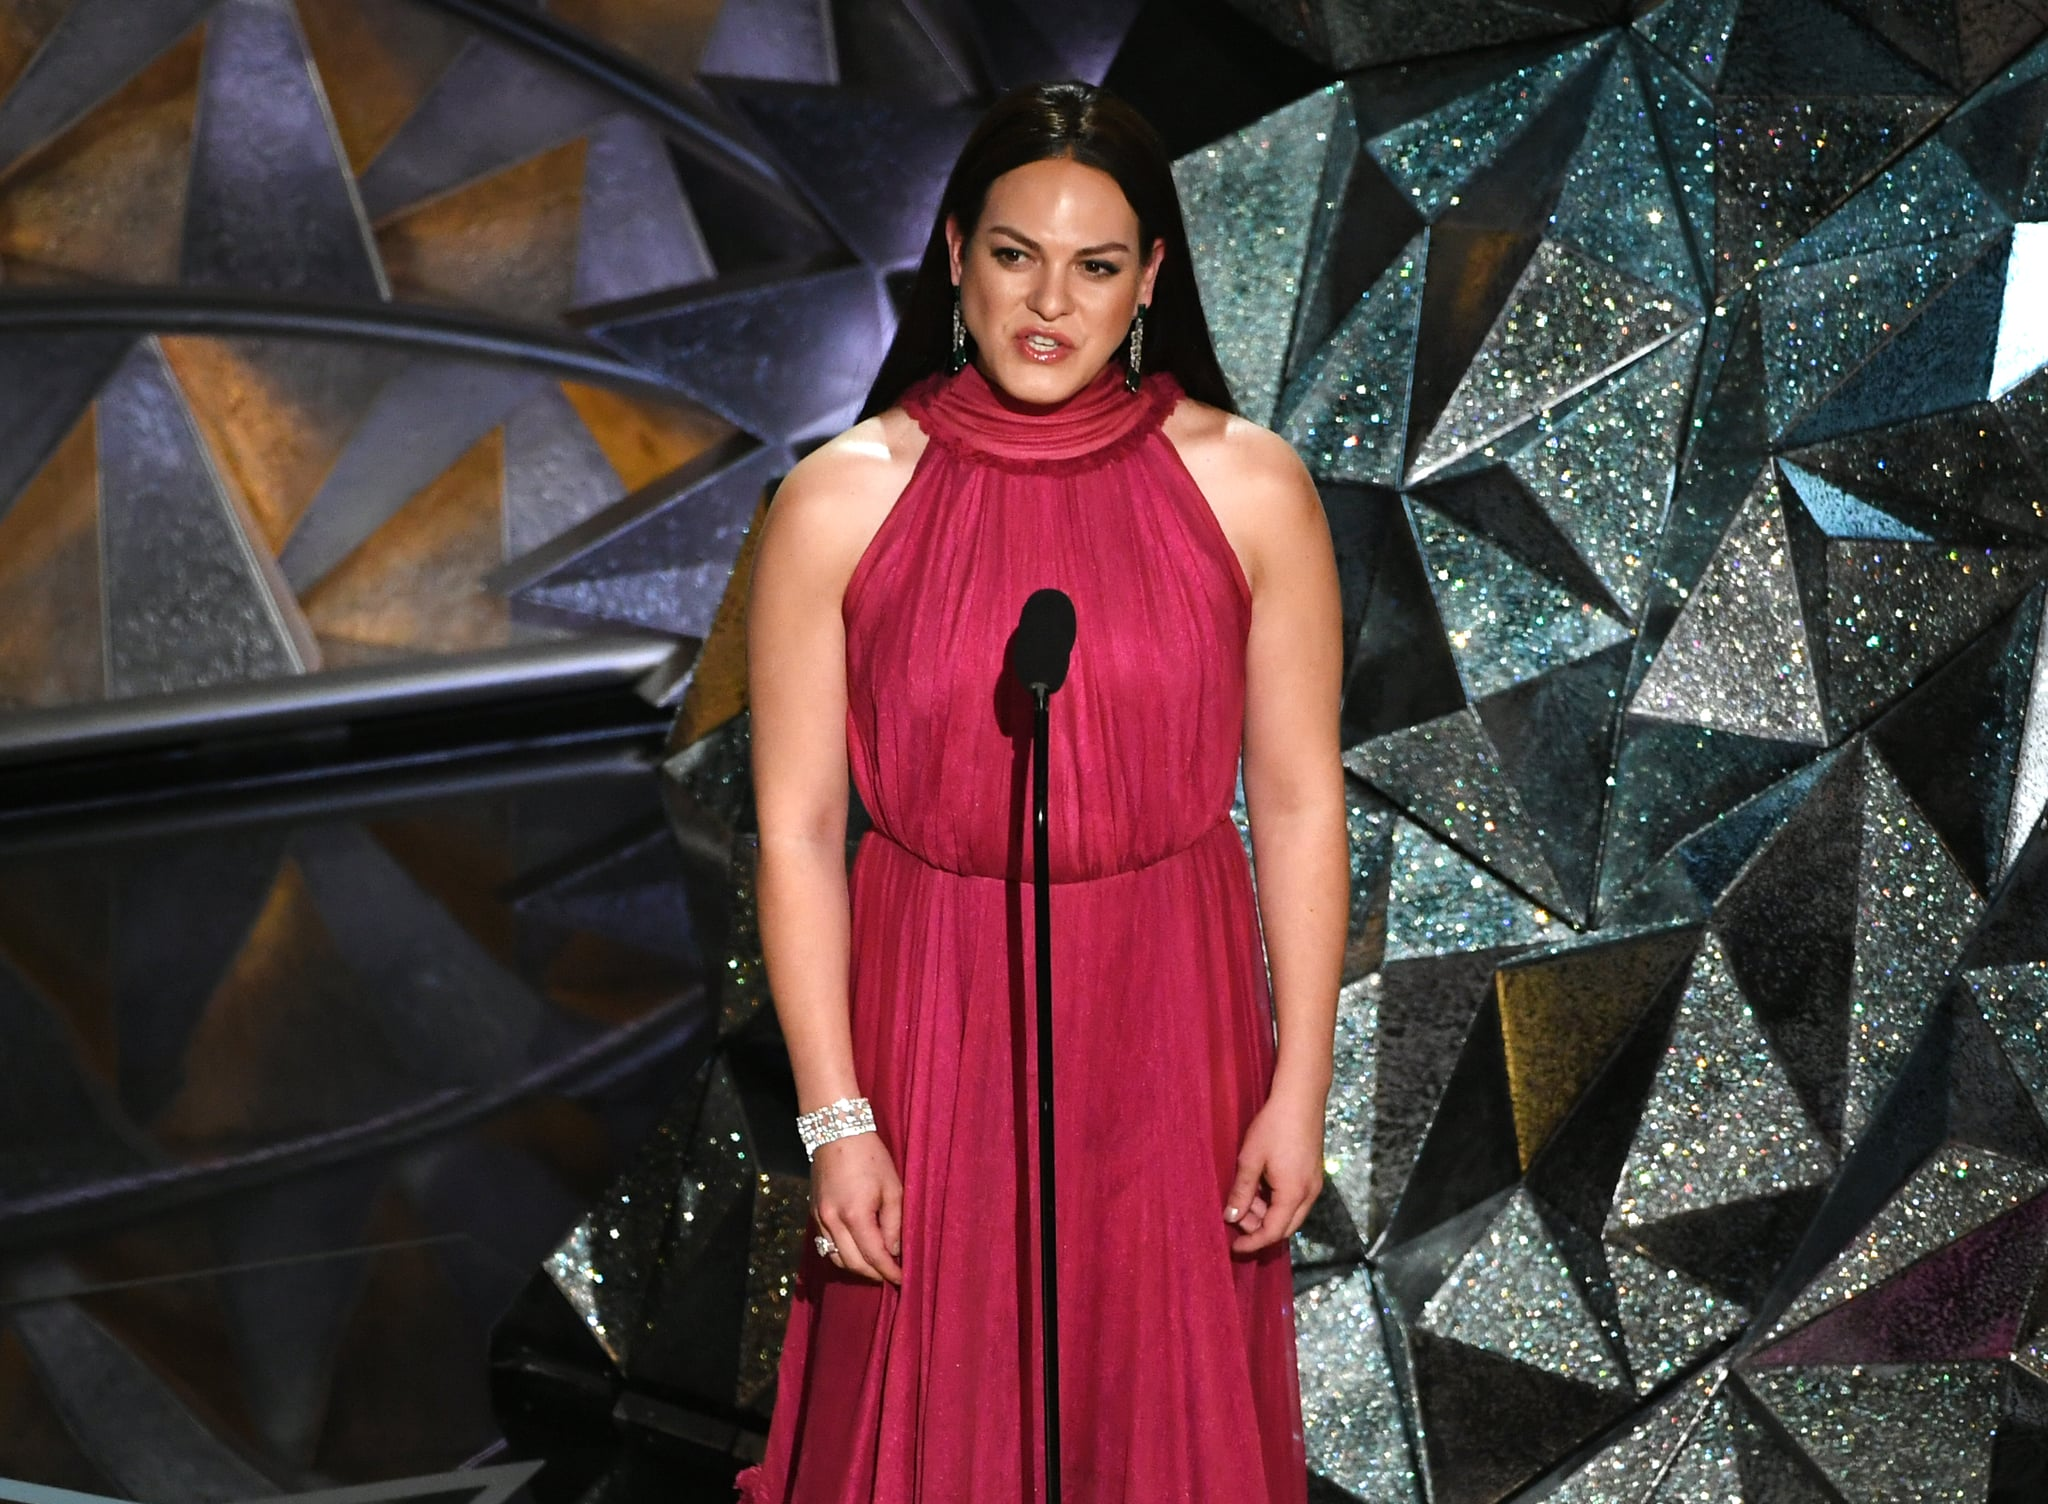 Daniela Vega, 'A Fantastic Woman' star, becomes first openly transgender Oscars presenter